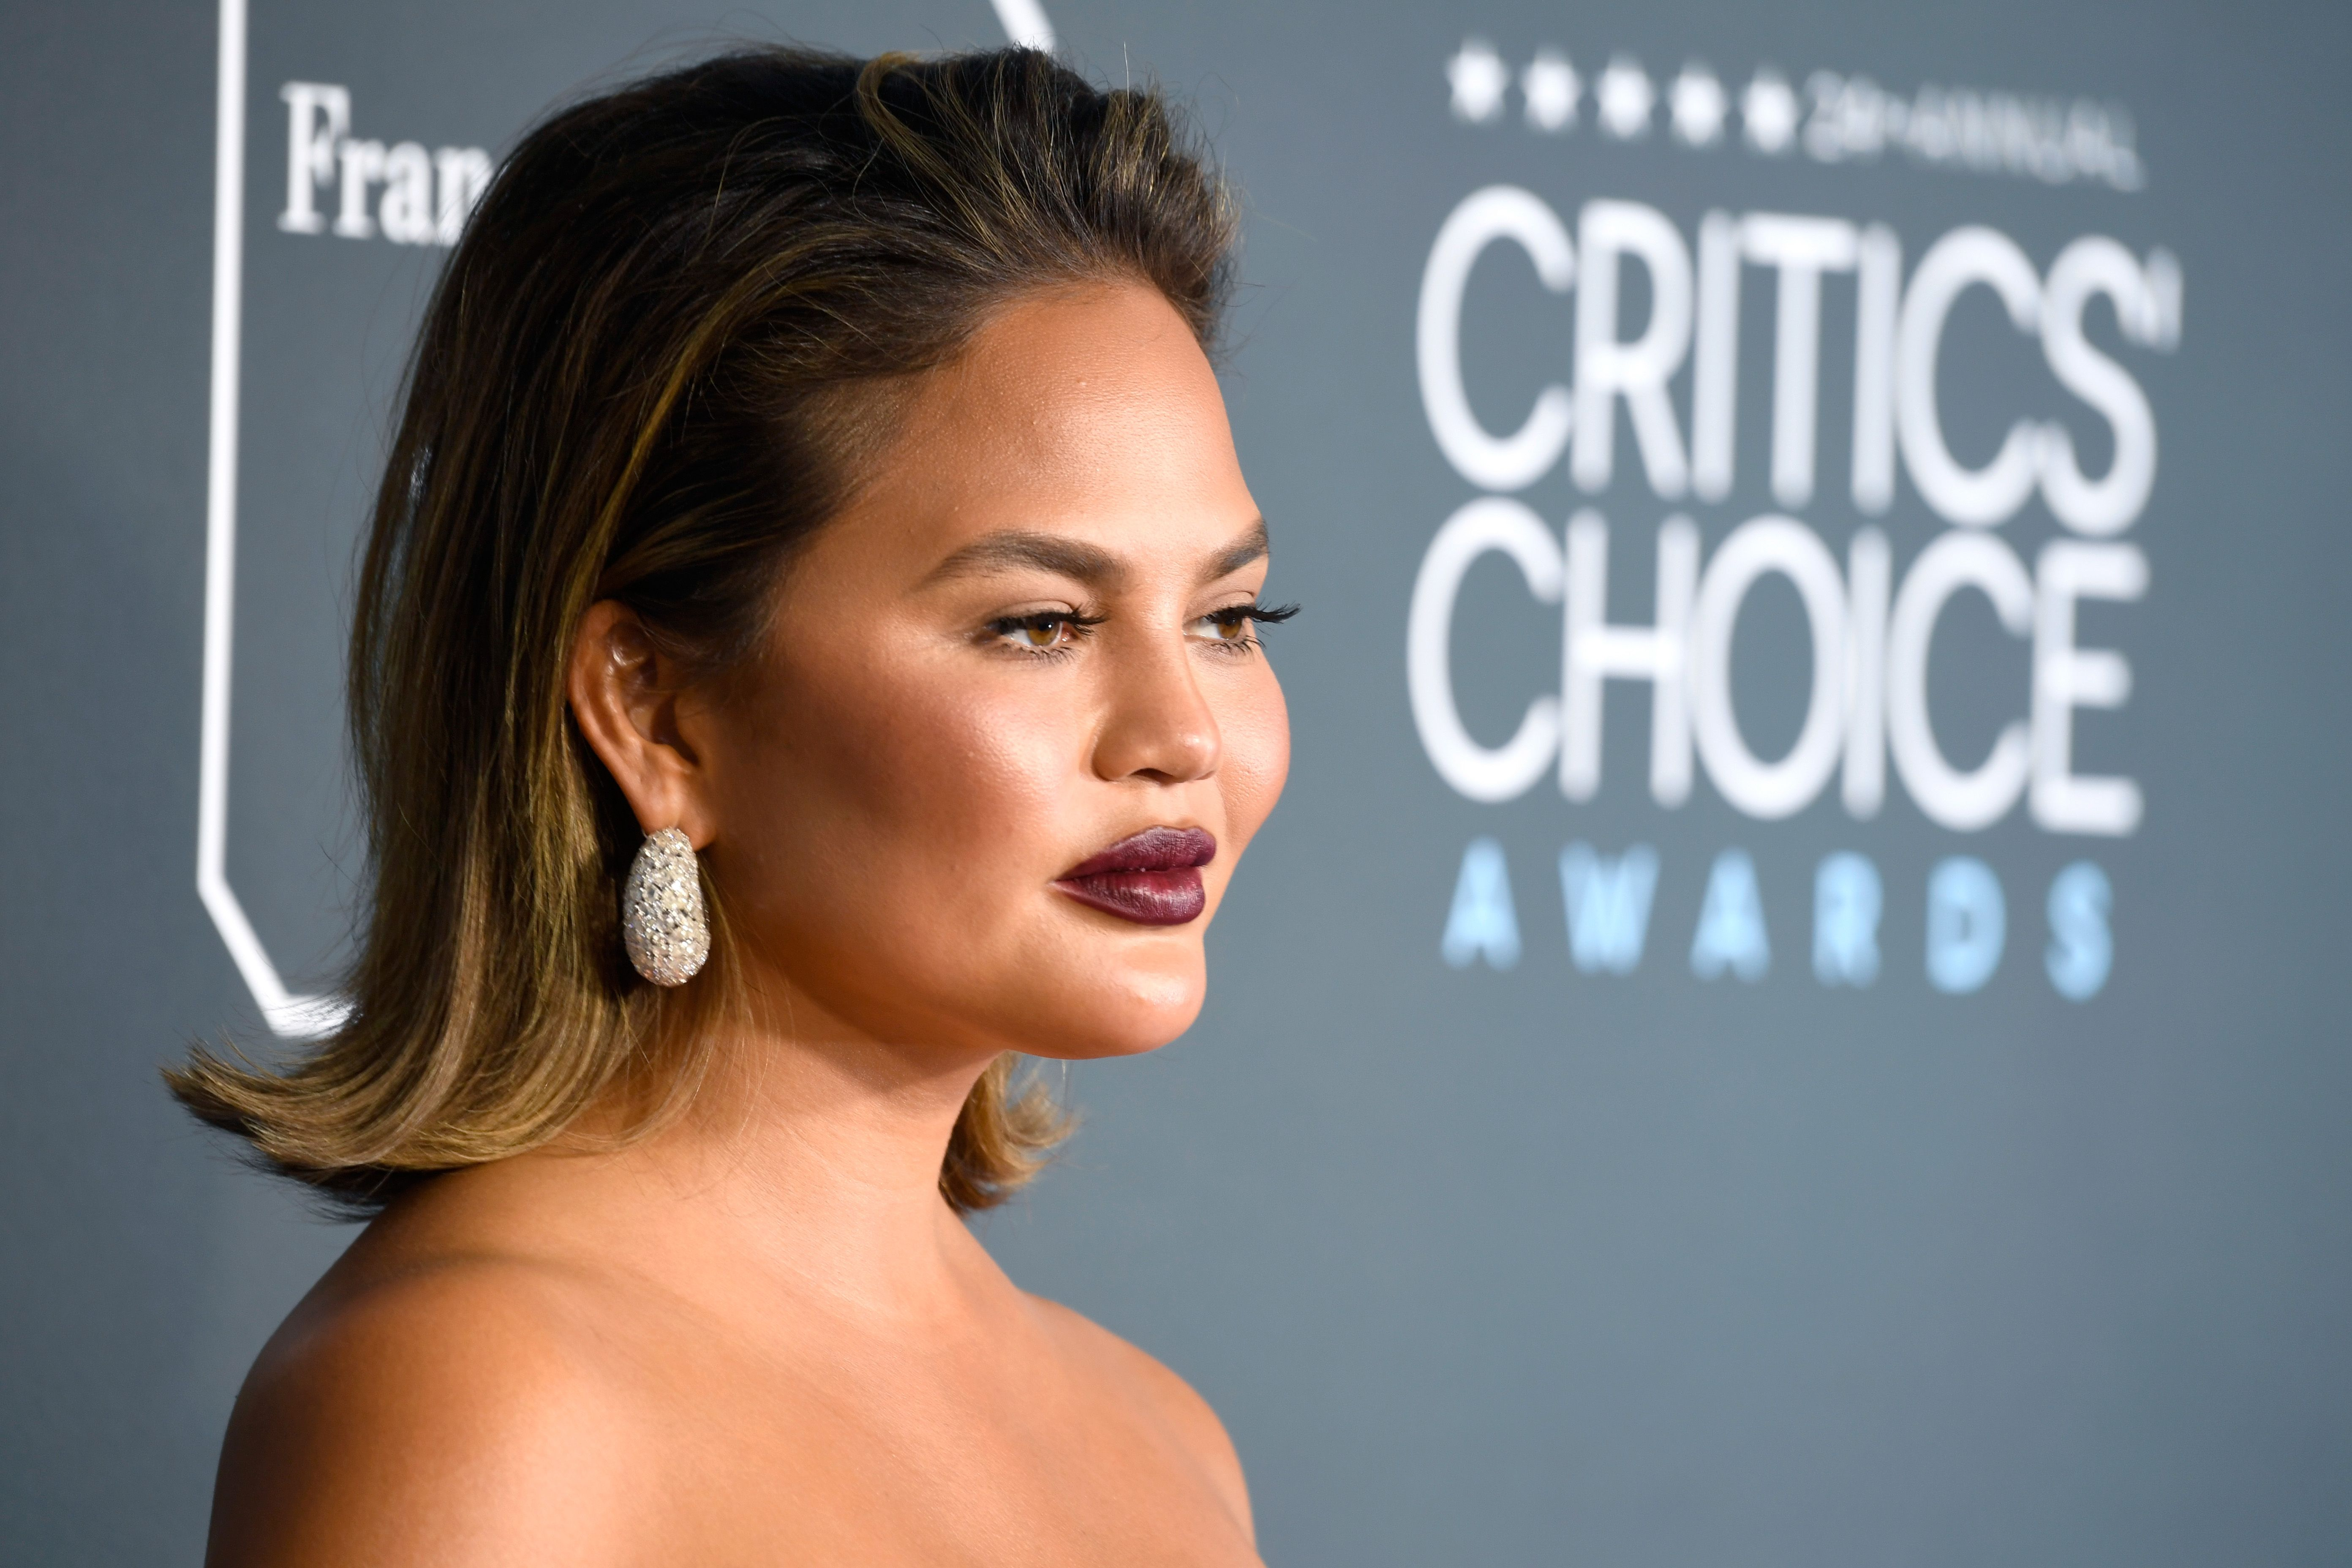 Chrissy Teigen keeps it real by showing us her acne on Instagram